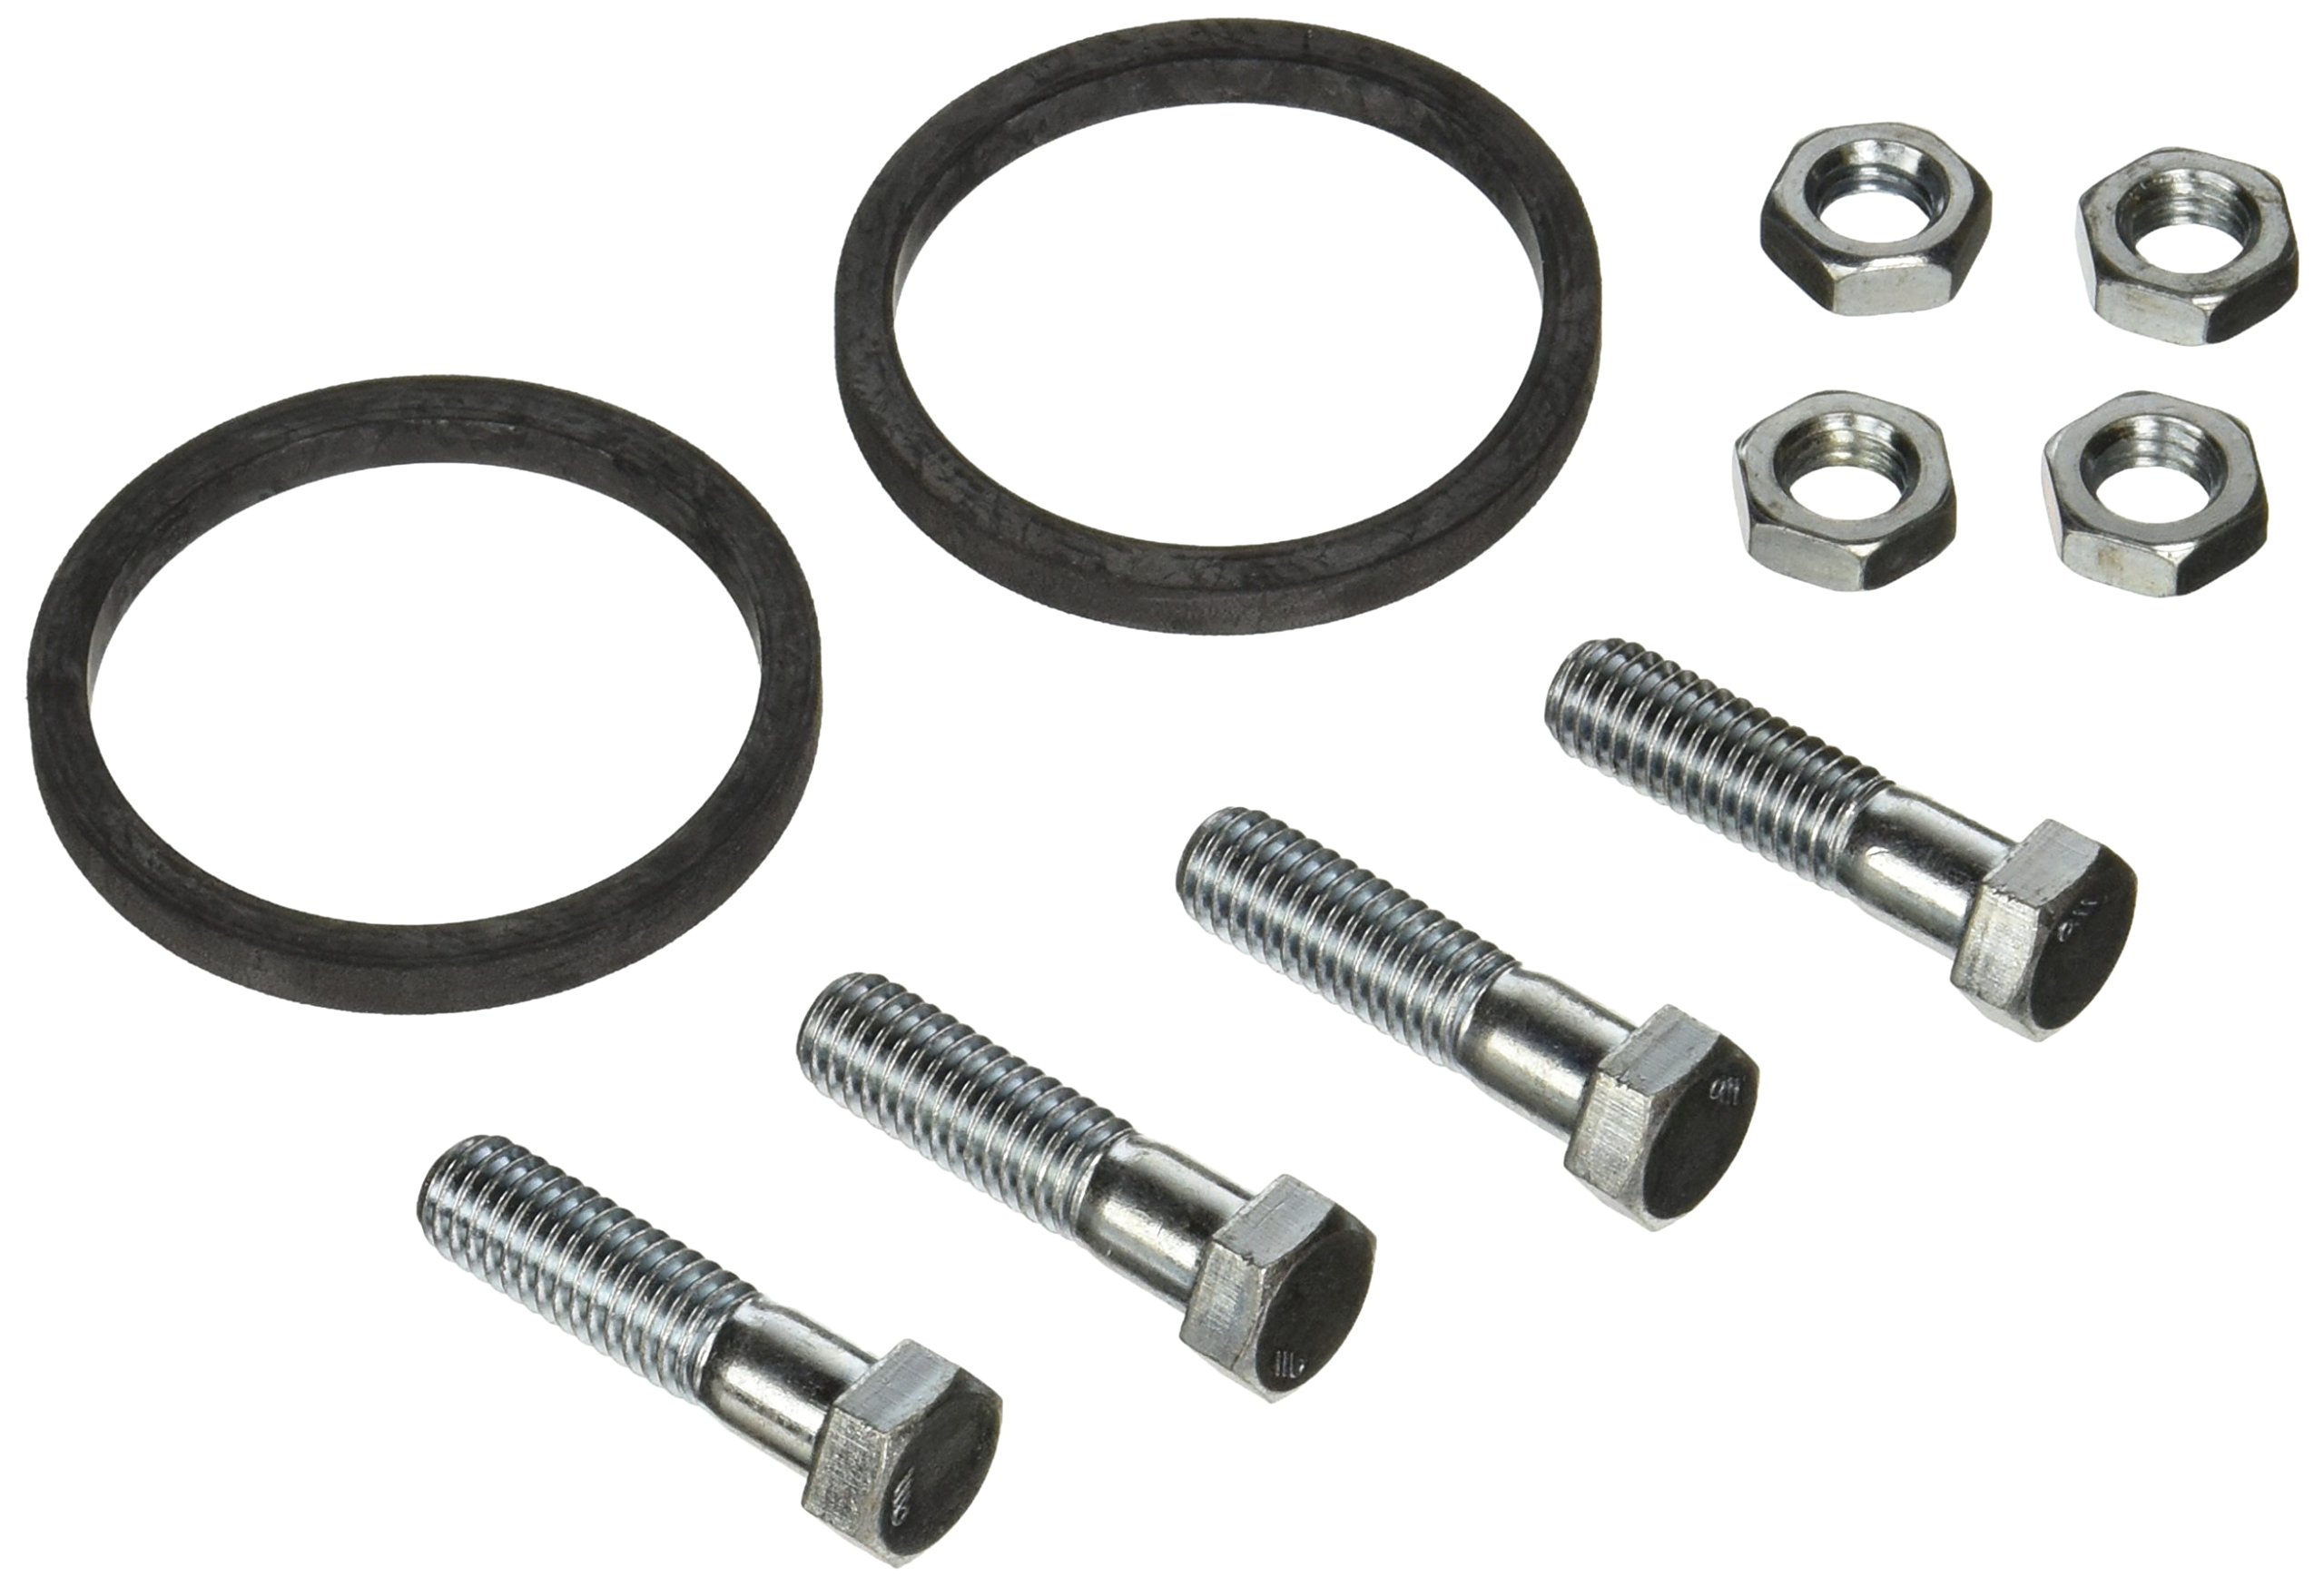 Armstrong Pumps 810120-204 Flange Bolt and Gasket Kit